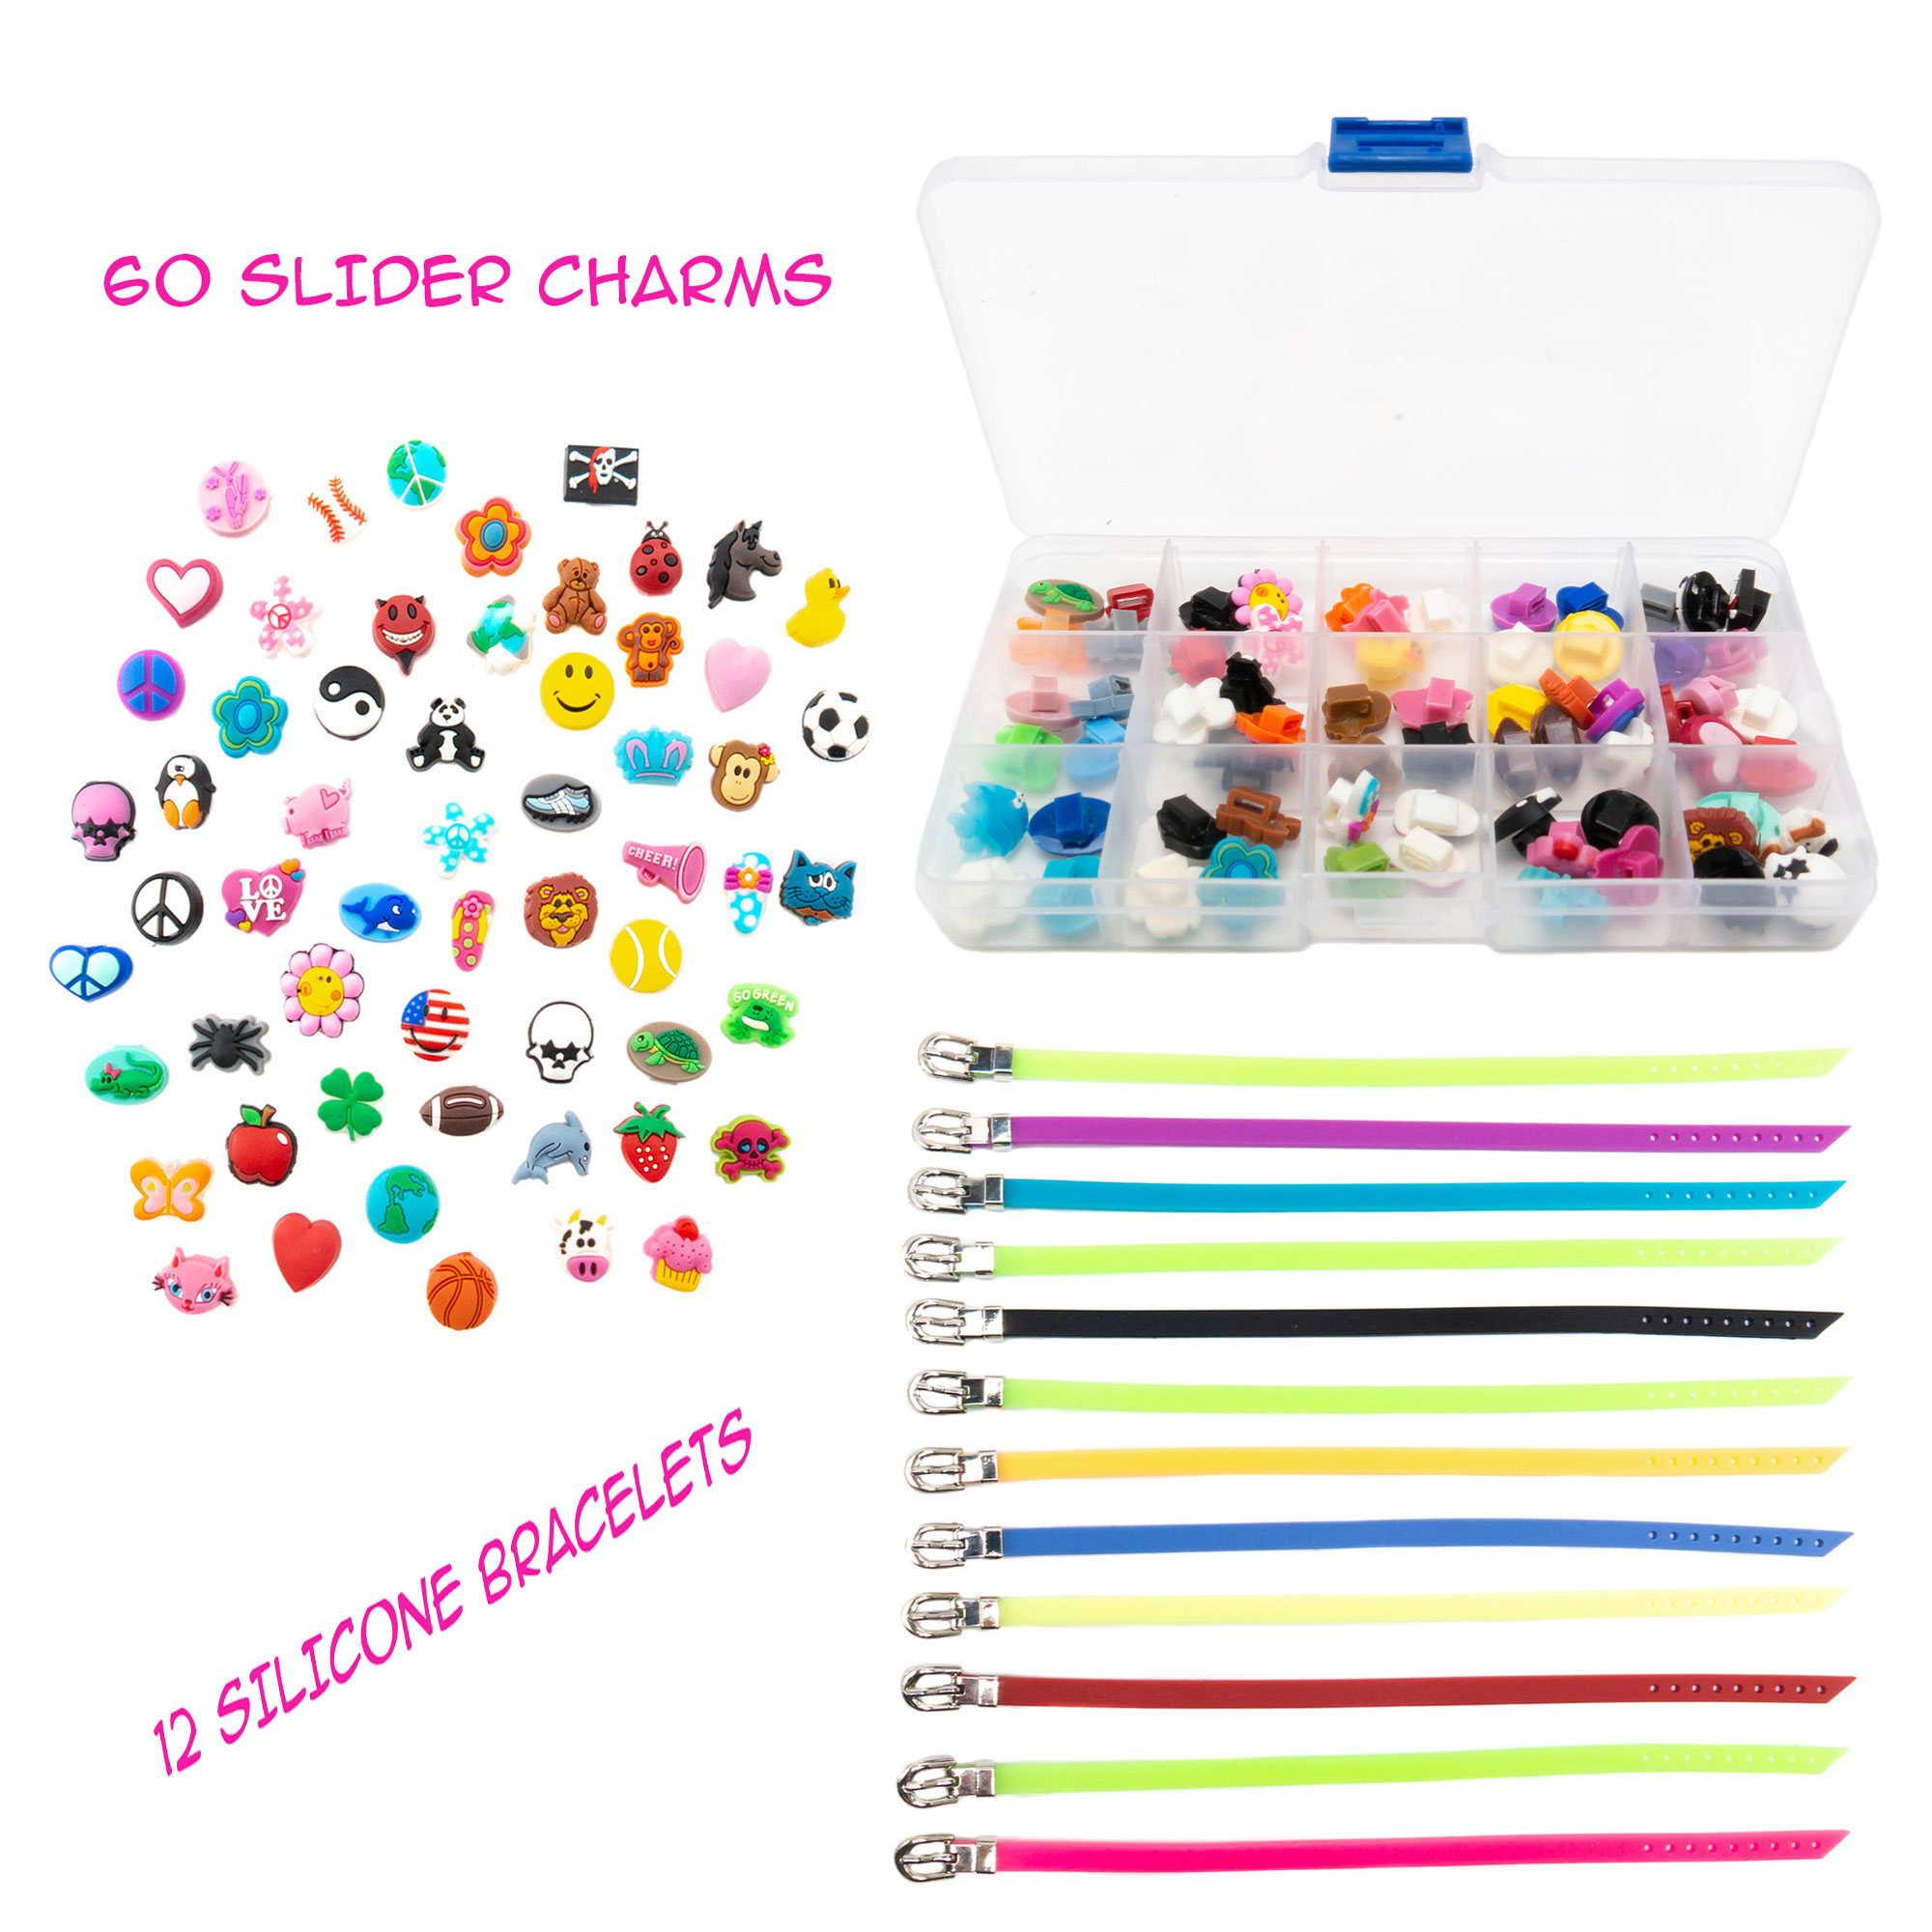 FROG SAC 60 PCs Slider Charms and 12 PCs Adjustable Silicone Belt Bracelets/Wristbands Kit, Assorted Colors, Great for DIY, Jewelry Making, Personalized Kids Birthday Party Favors